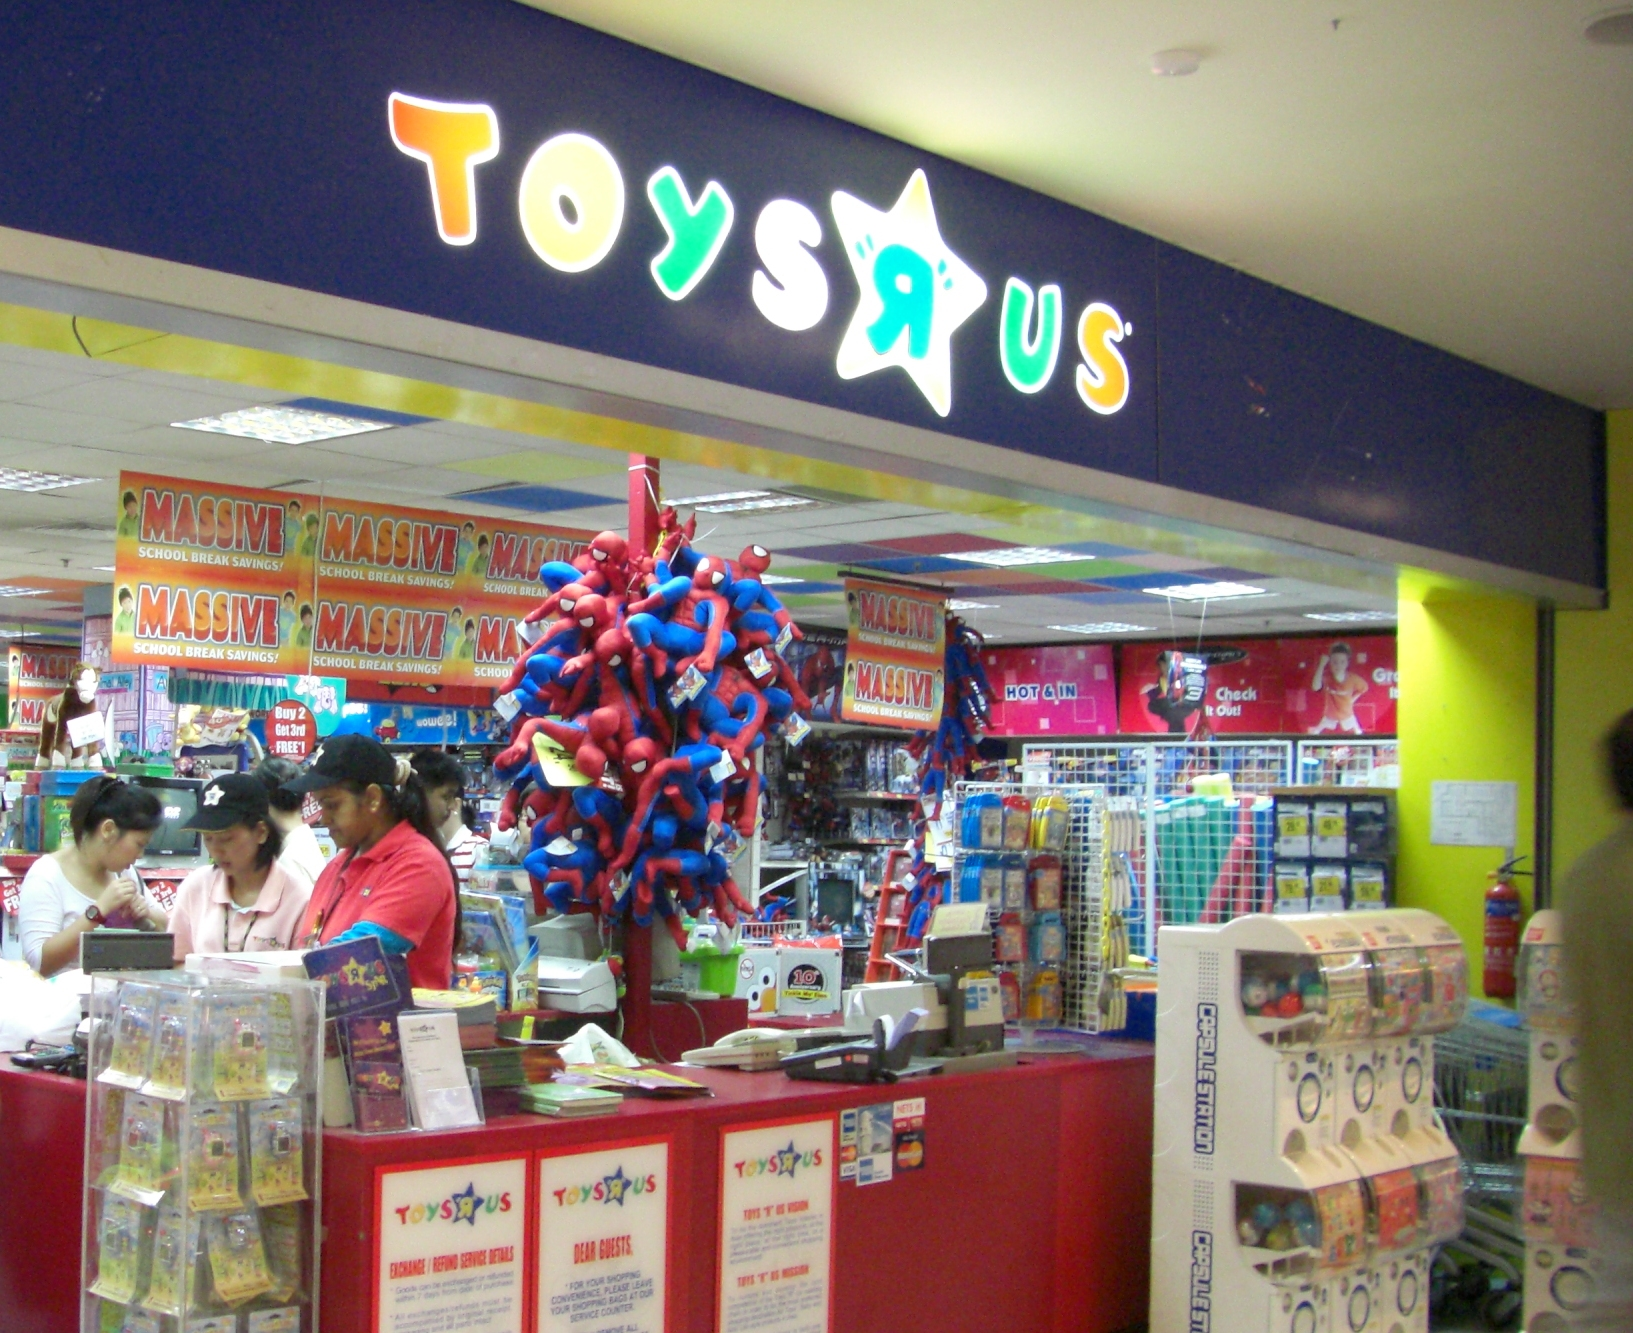 historical forecast on toys r us essay - toysrus introduction in this assignment i have chosen to focus on explaining what kind of company toysrus is, giving a brief, short summary of the firms history, their corporate responsibilities, what their competitive advantages are and how they implement their strategies through retailing and merchandise.